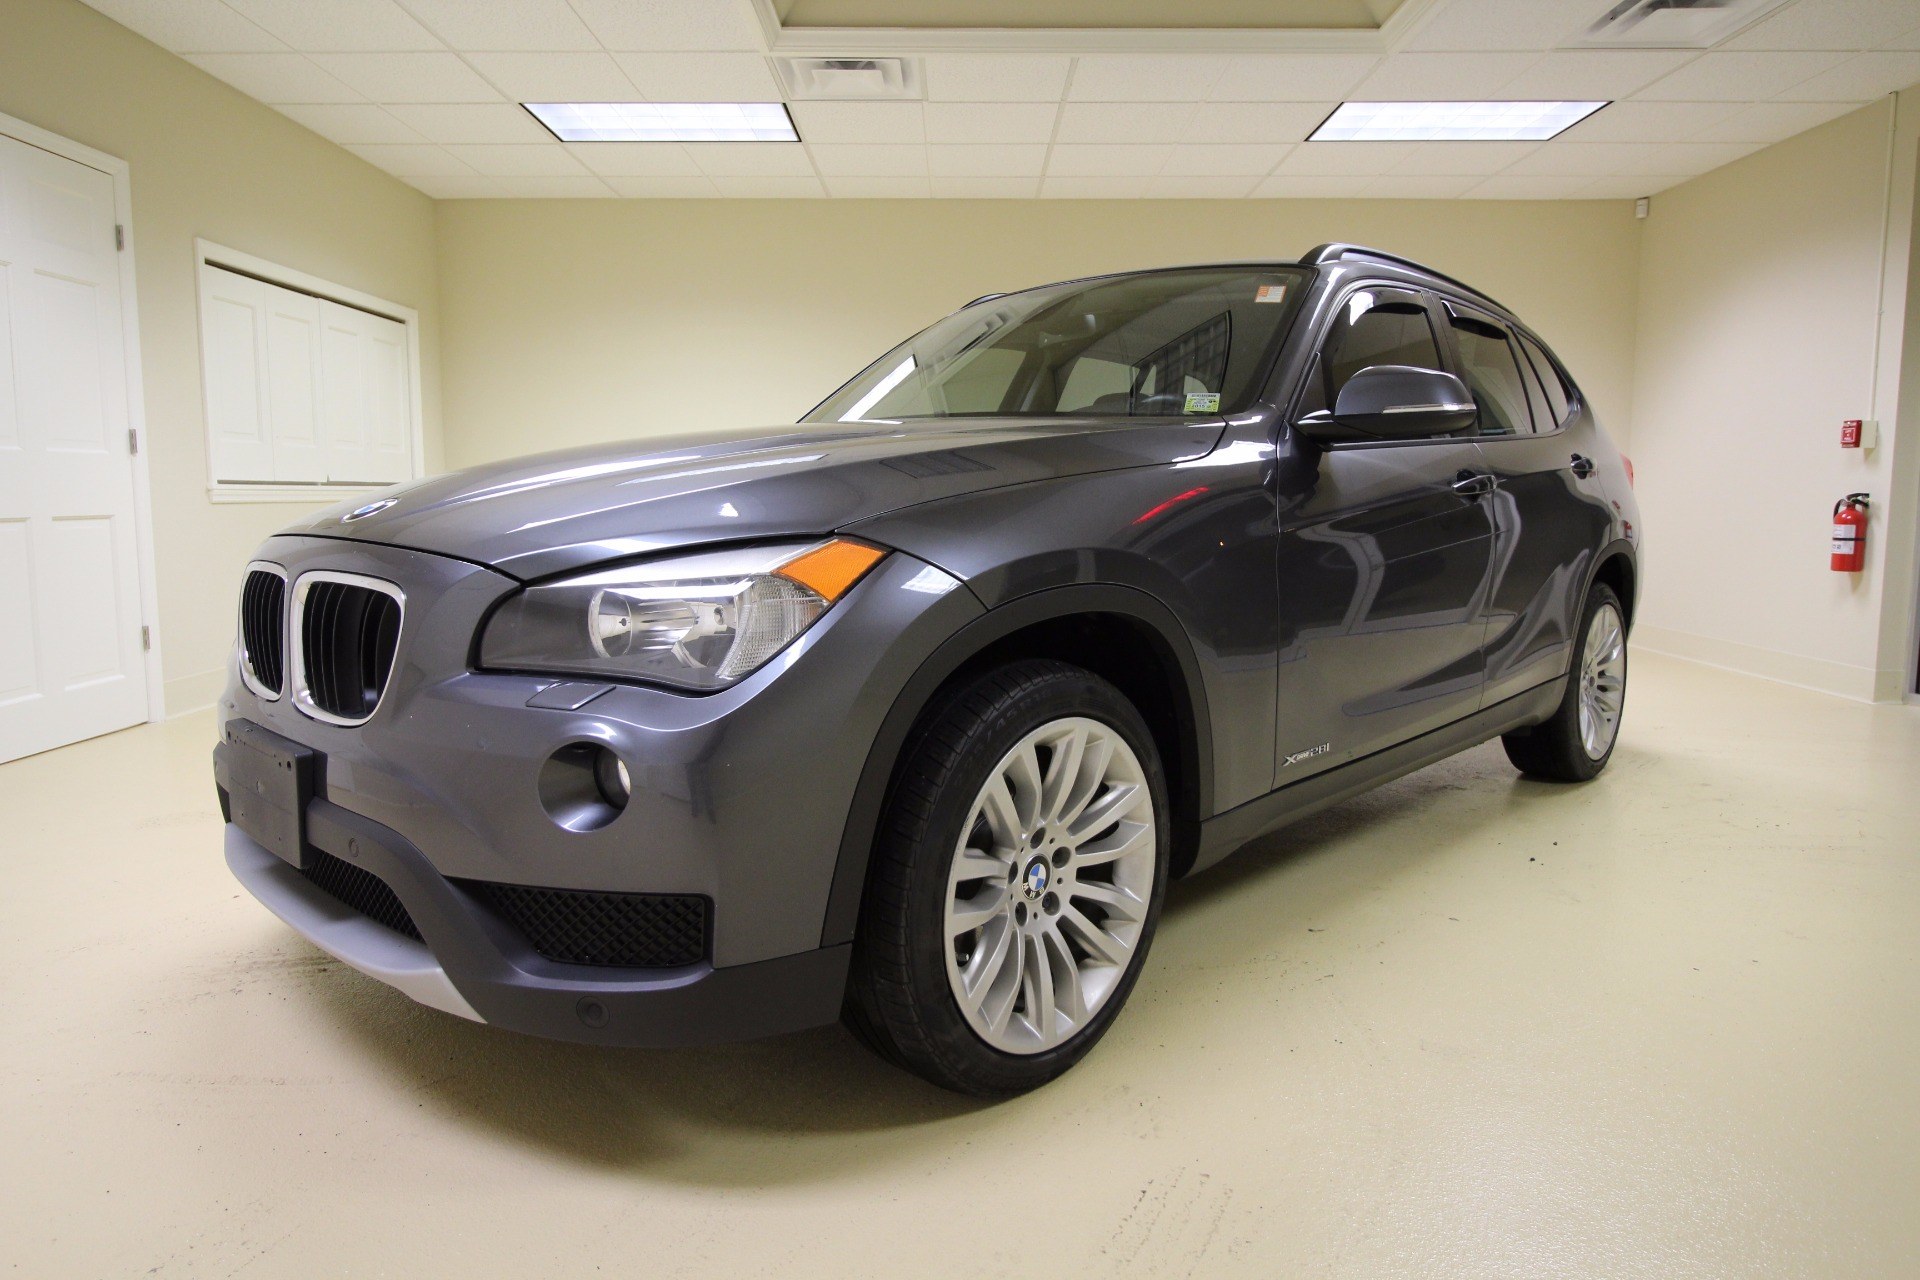 2014 bmw x1 xdrive28i stock 16344 for sale near albany ny ny bmw dealer for sale in albany. Black Bedroom Furniture Sets. Home Design Ideas